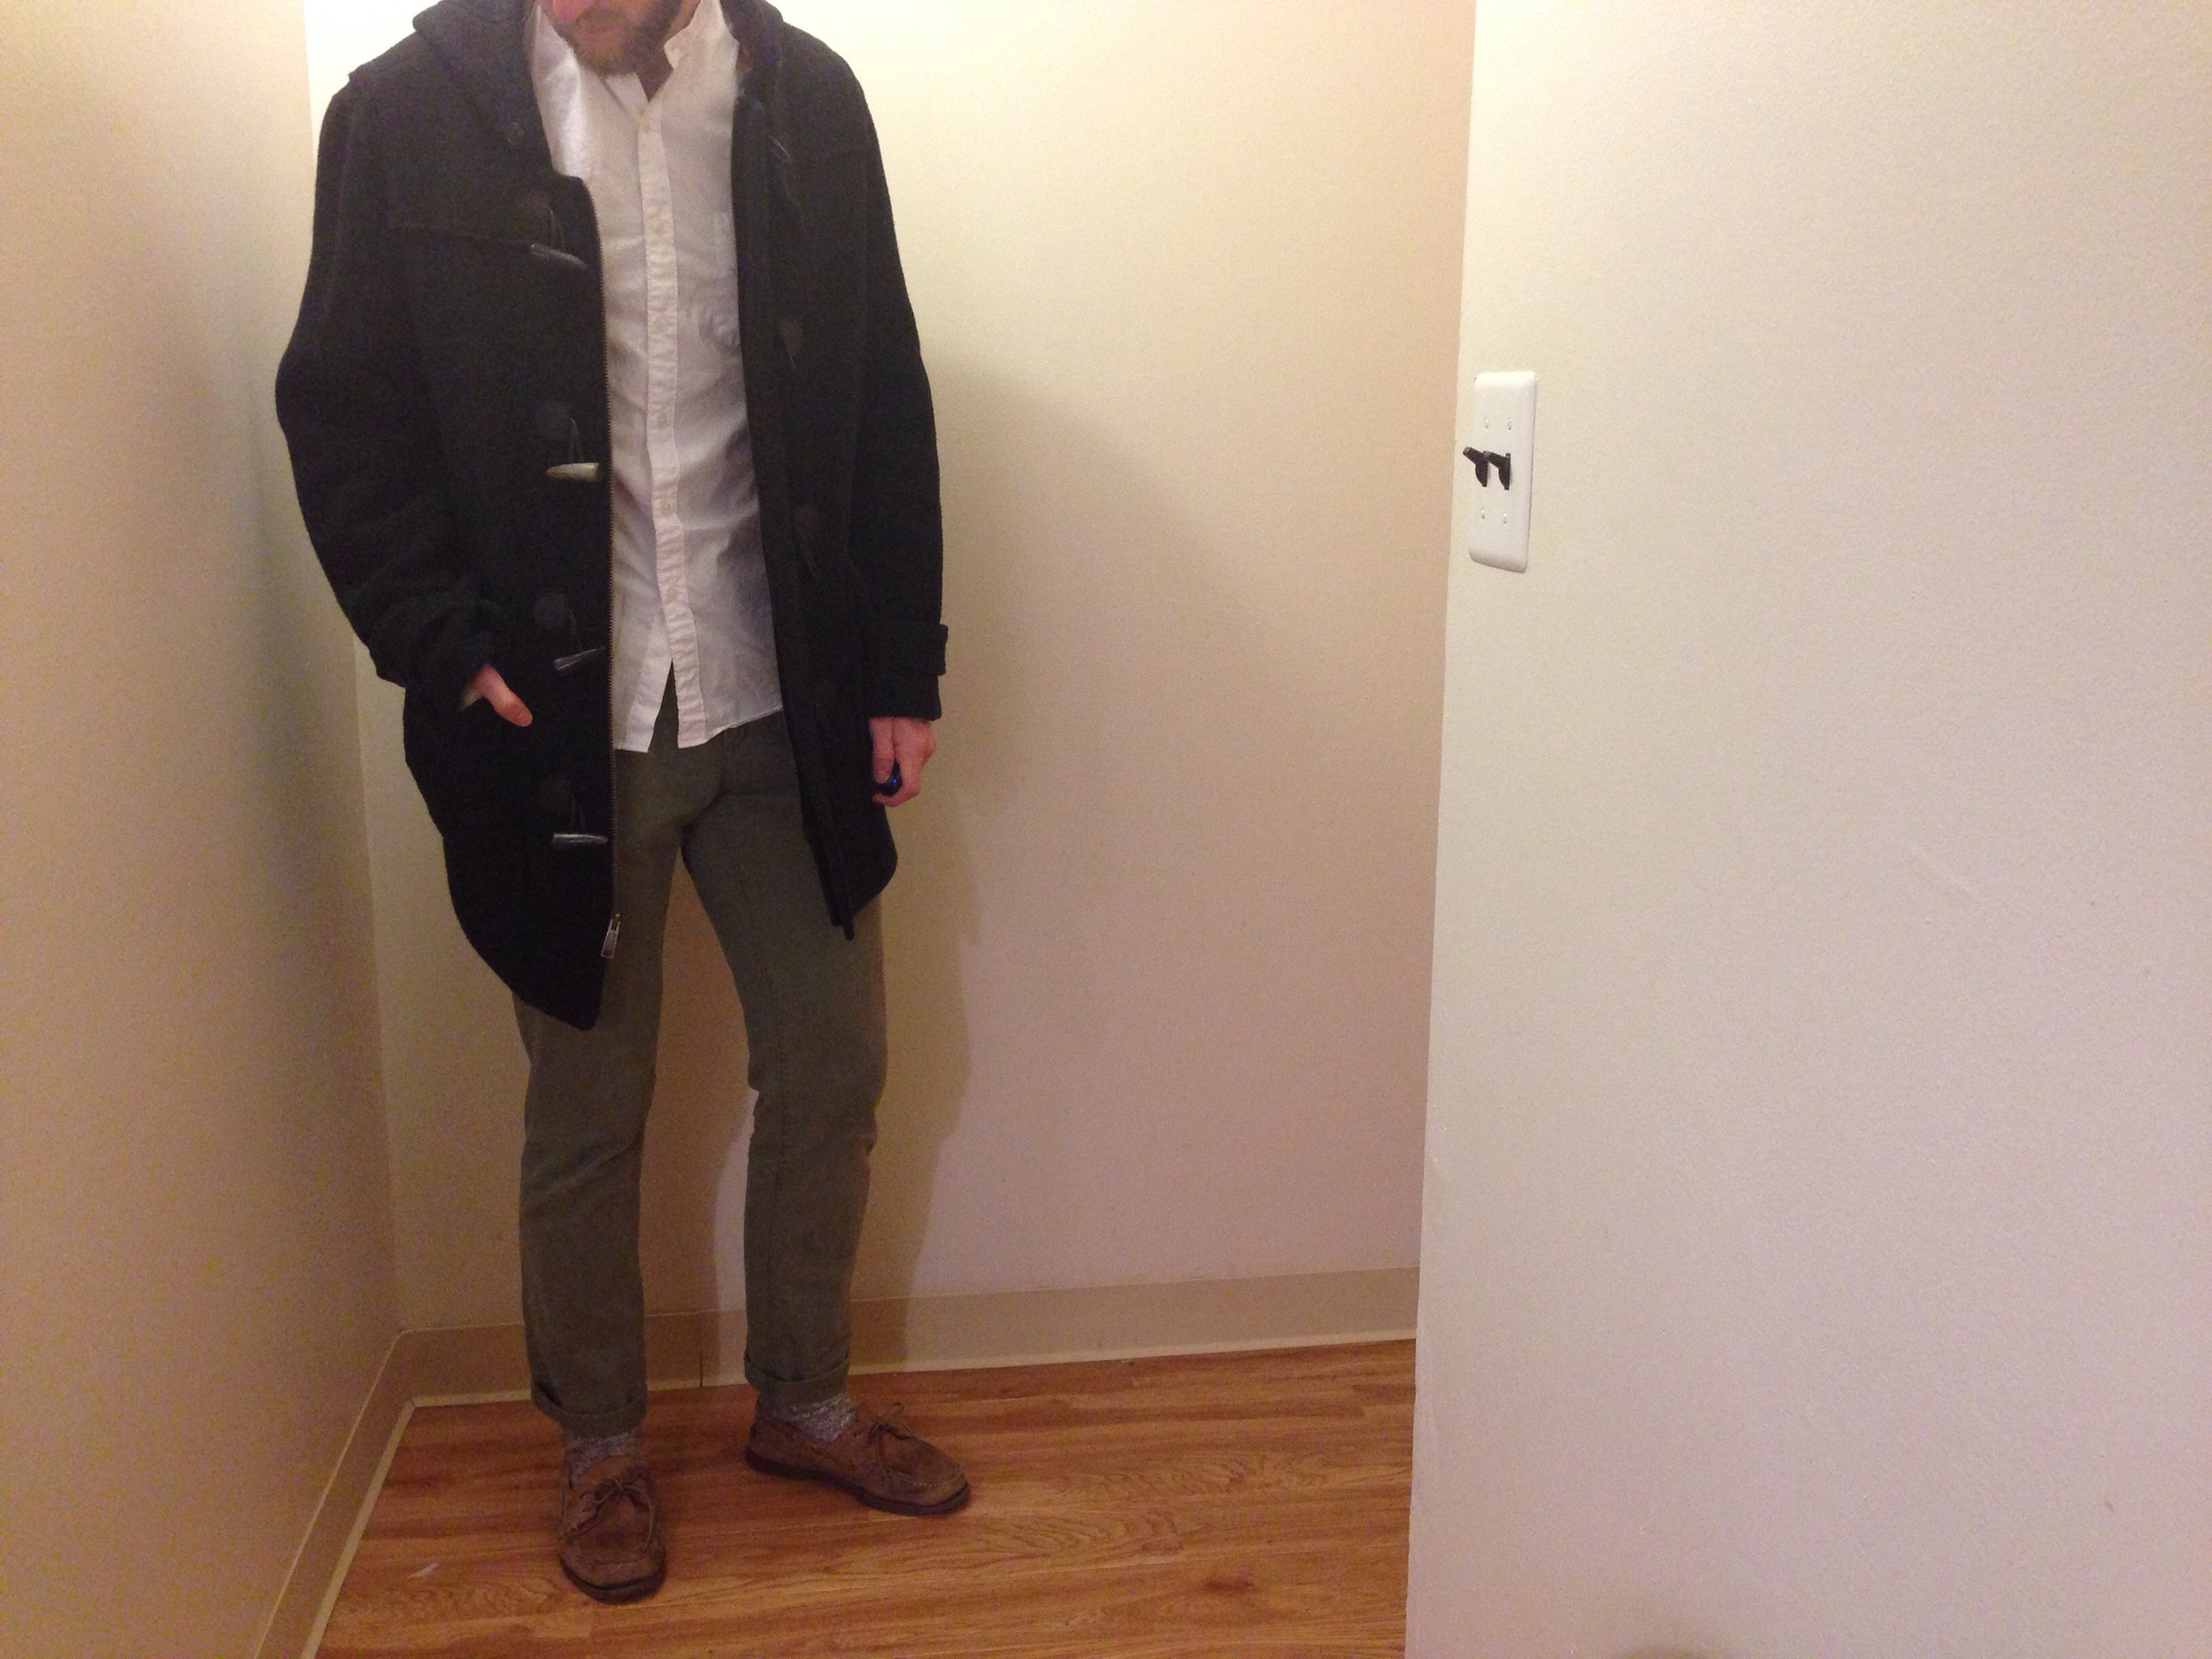 Lands' End/J. Crew/Gap/Anonymousism/Sperry's